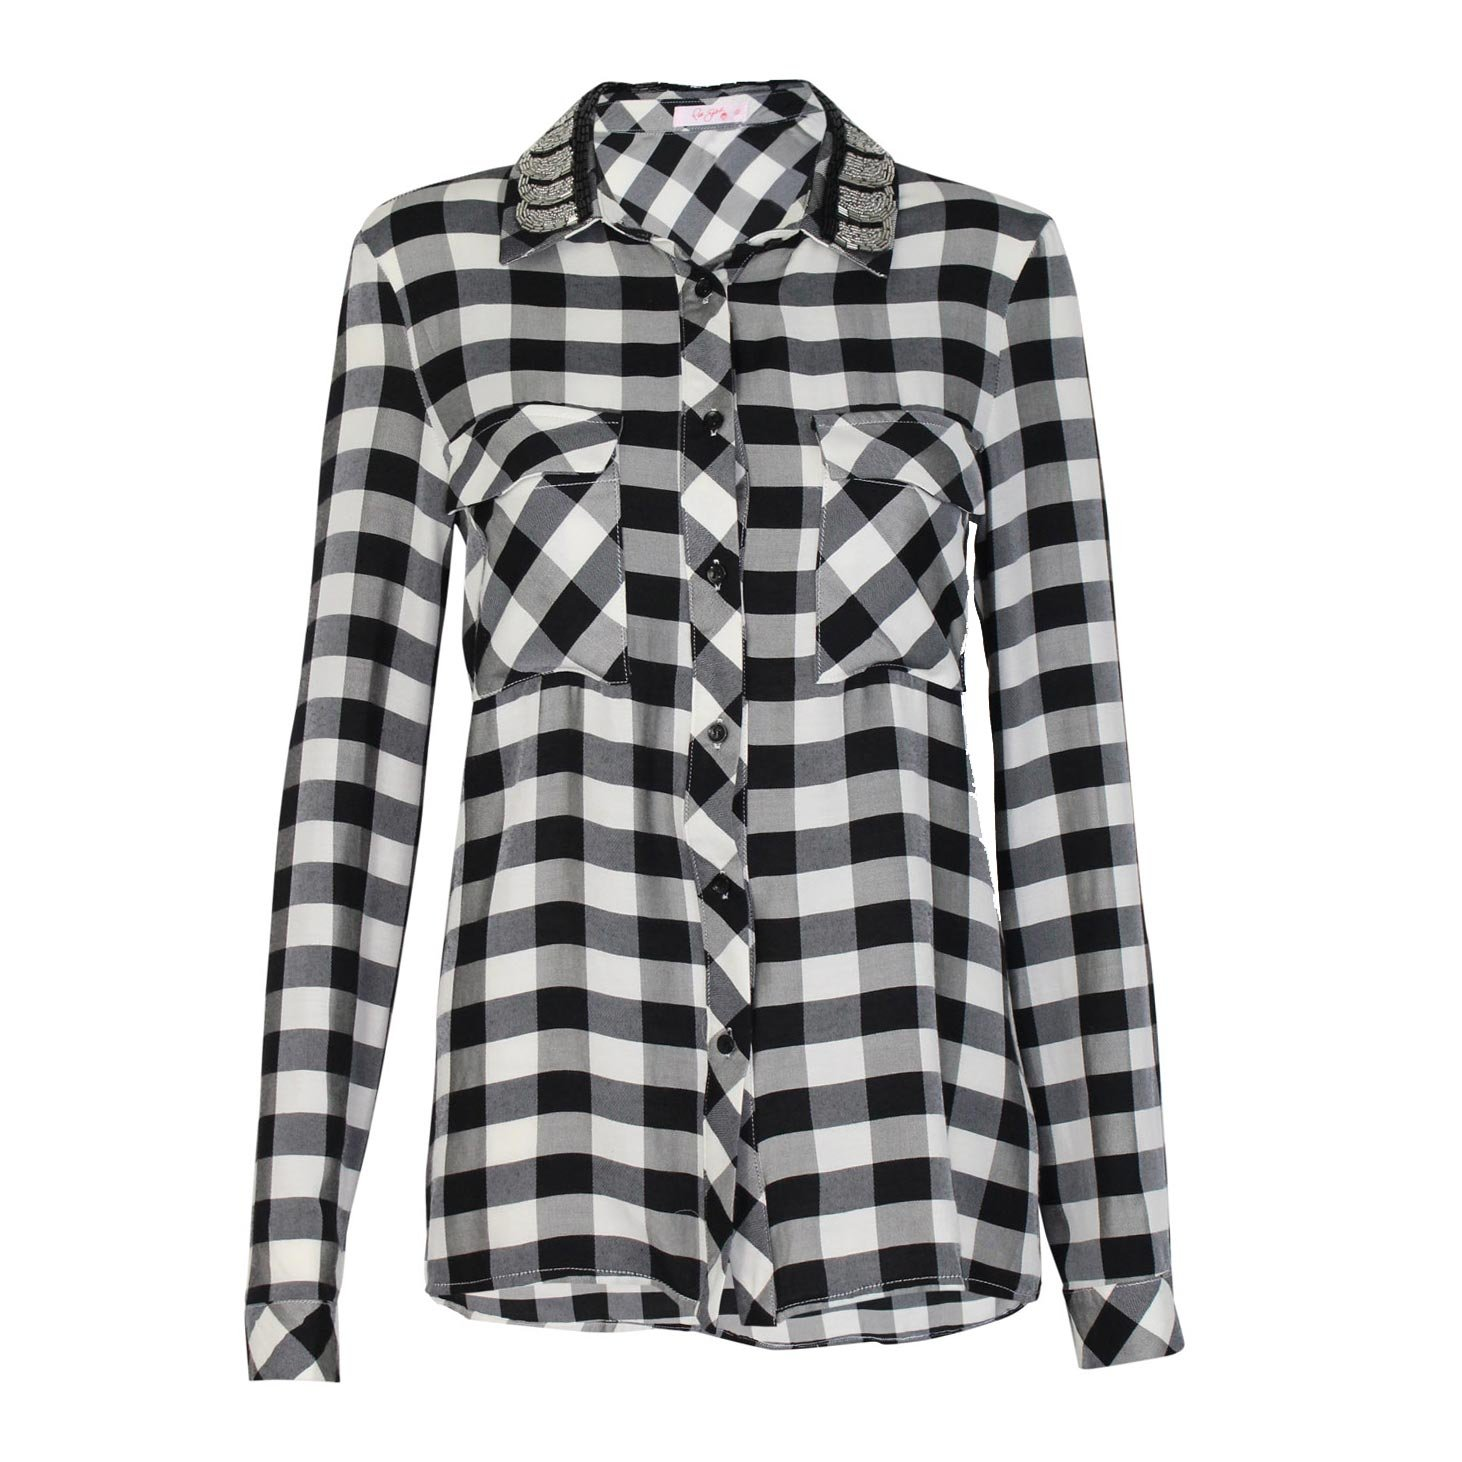 73f74958 Amazon.com: Pink Spider Womens Checkered Button Down Shirt Black/White  Small, Medium: Clothing